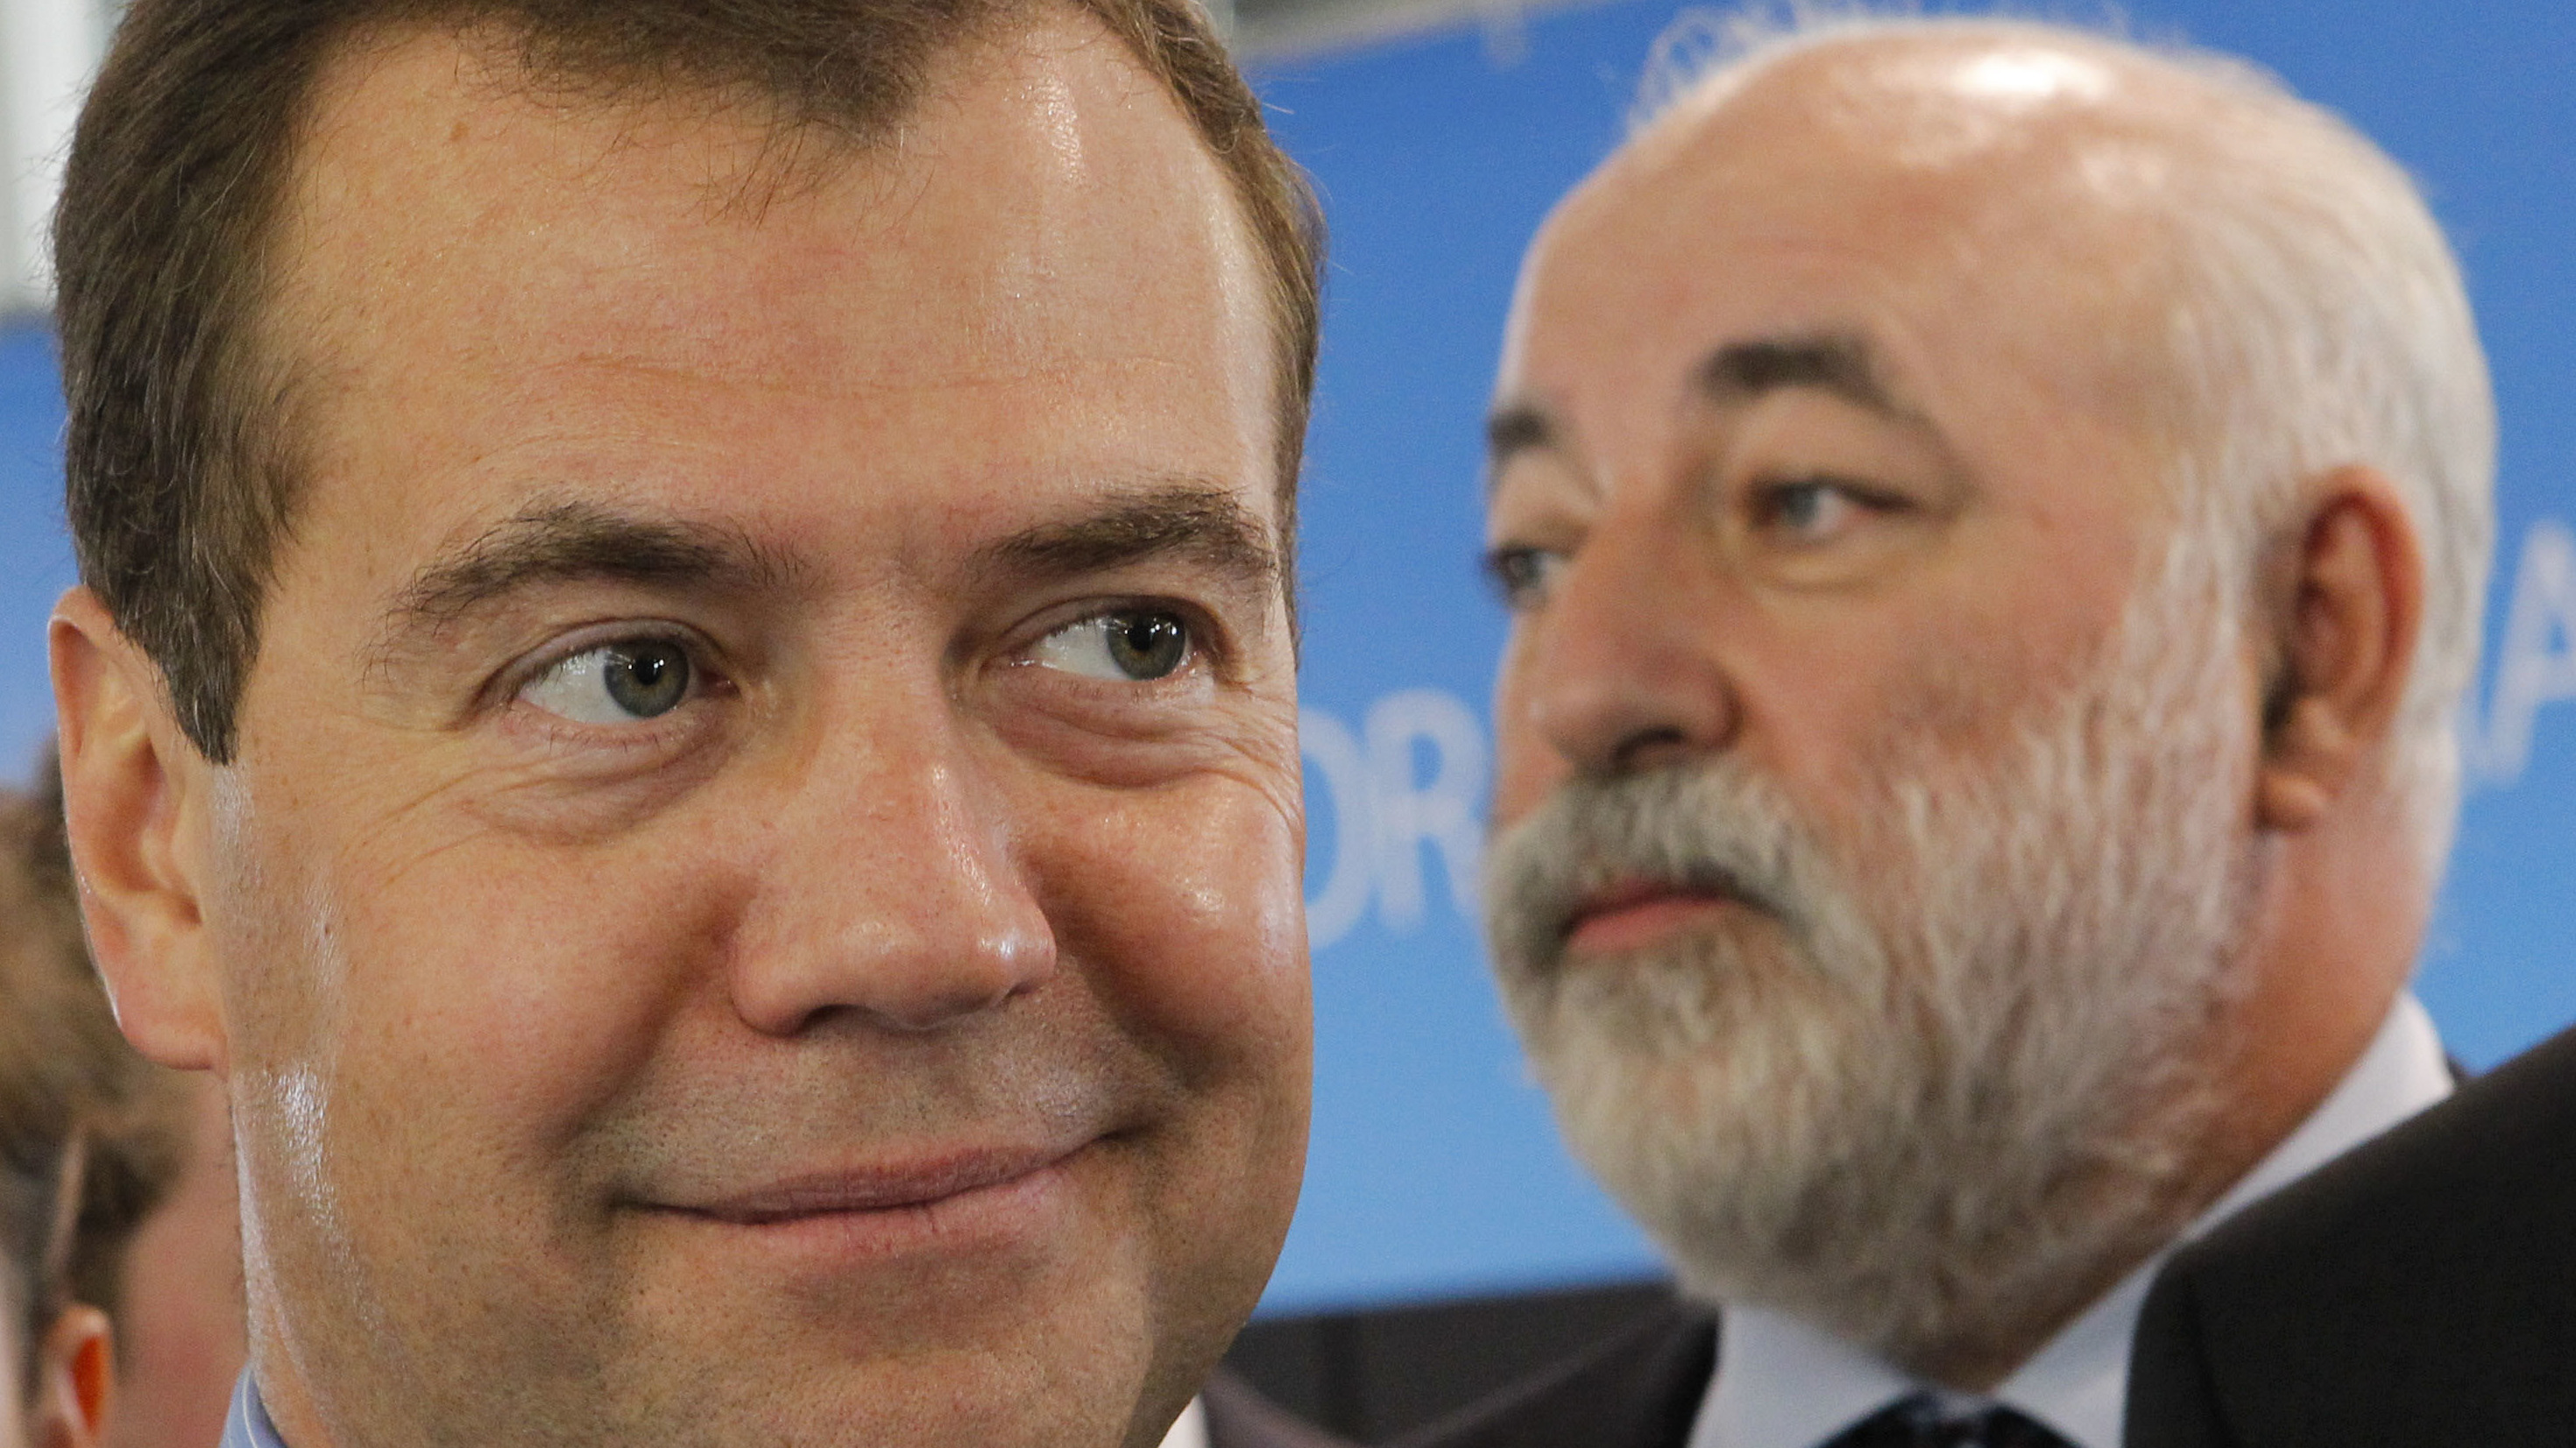 Russia's Prime Minister Dmitry Medvedev left and billionaire Viktor Vekselberg launched a foundation that the FBI warned was a clandestine attempt to pilfer American technical secrets